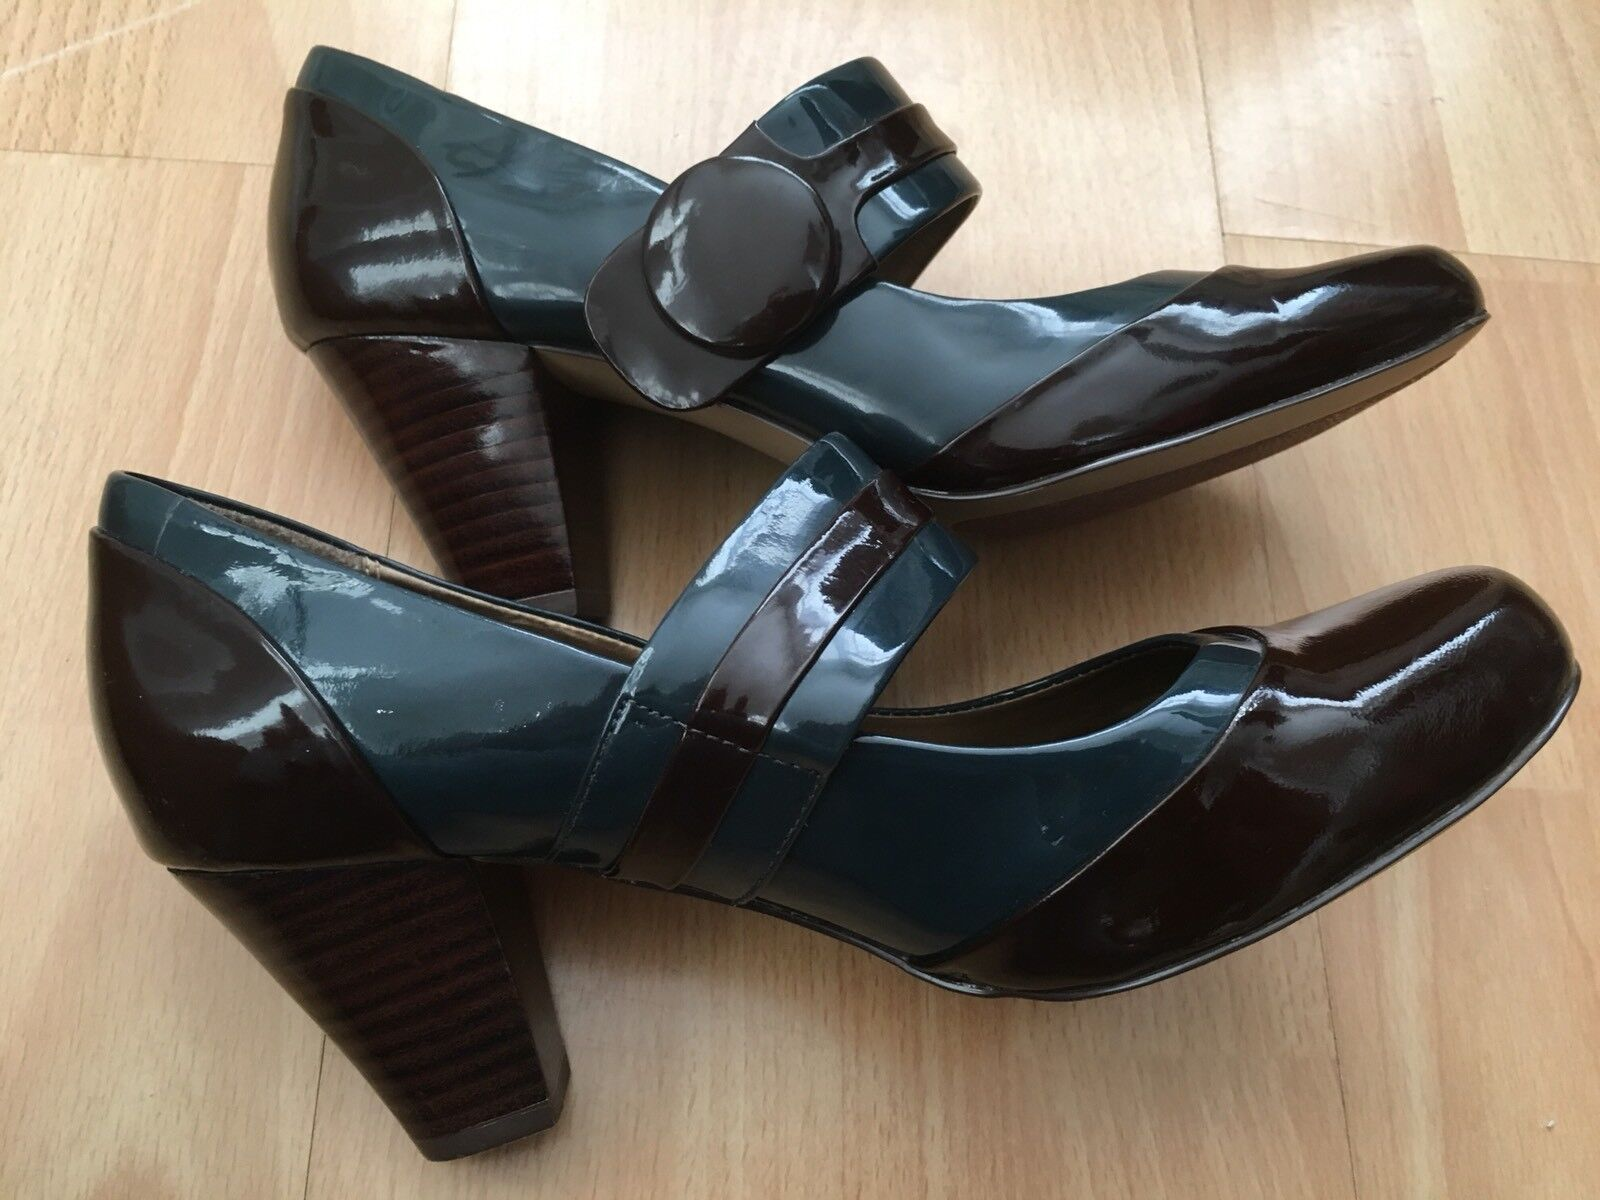 CLARKS Two Tone Patent Leather CUSHION SOFT UK 4 Mary Jane Lindy Hop shoes